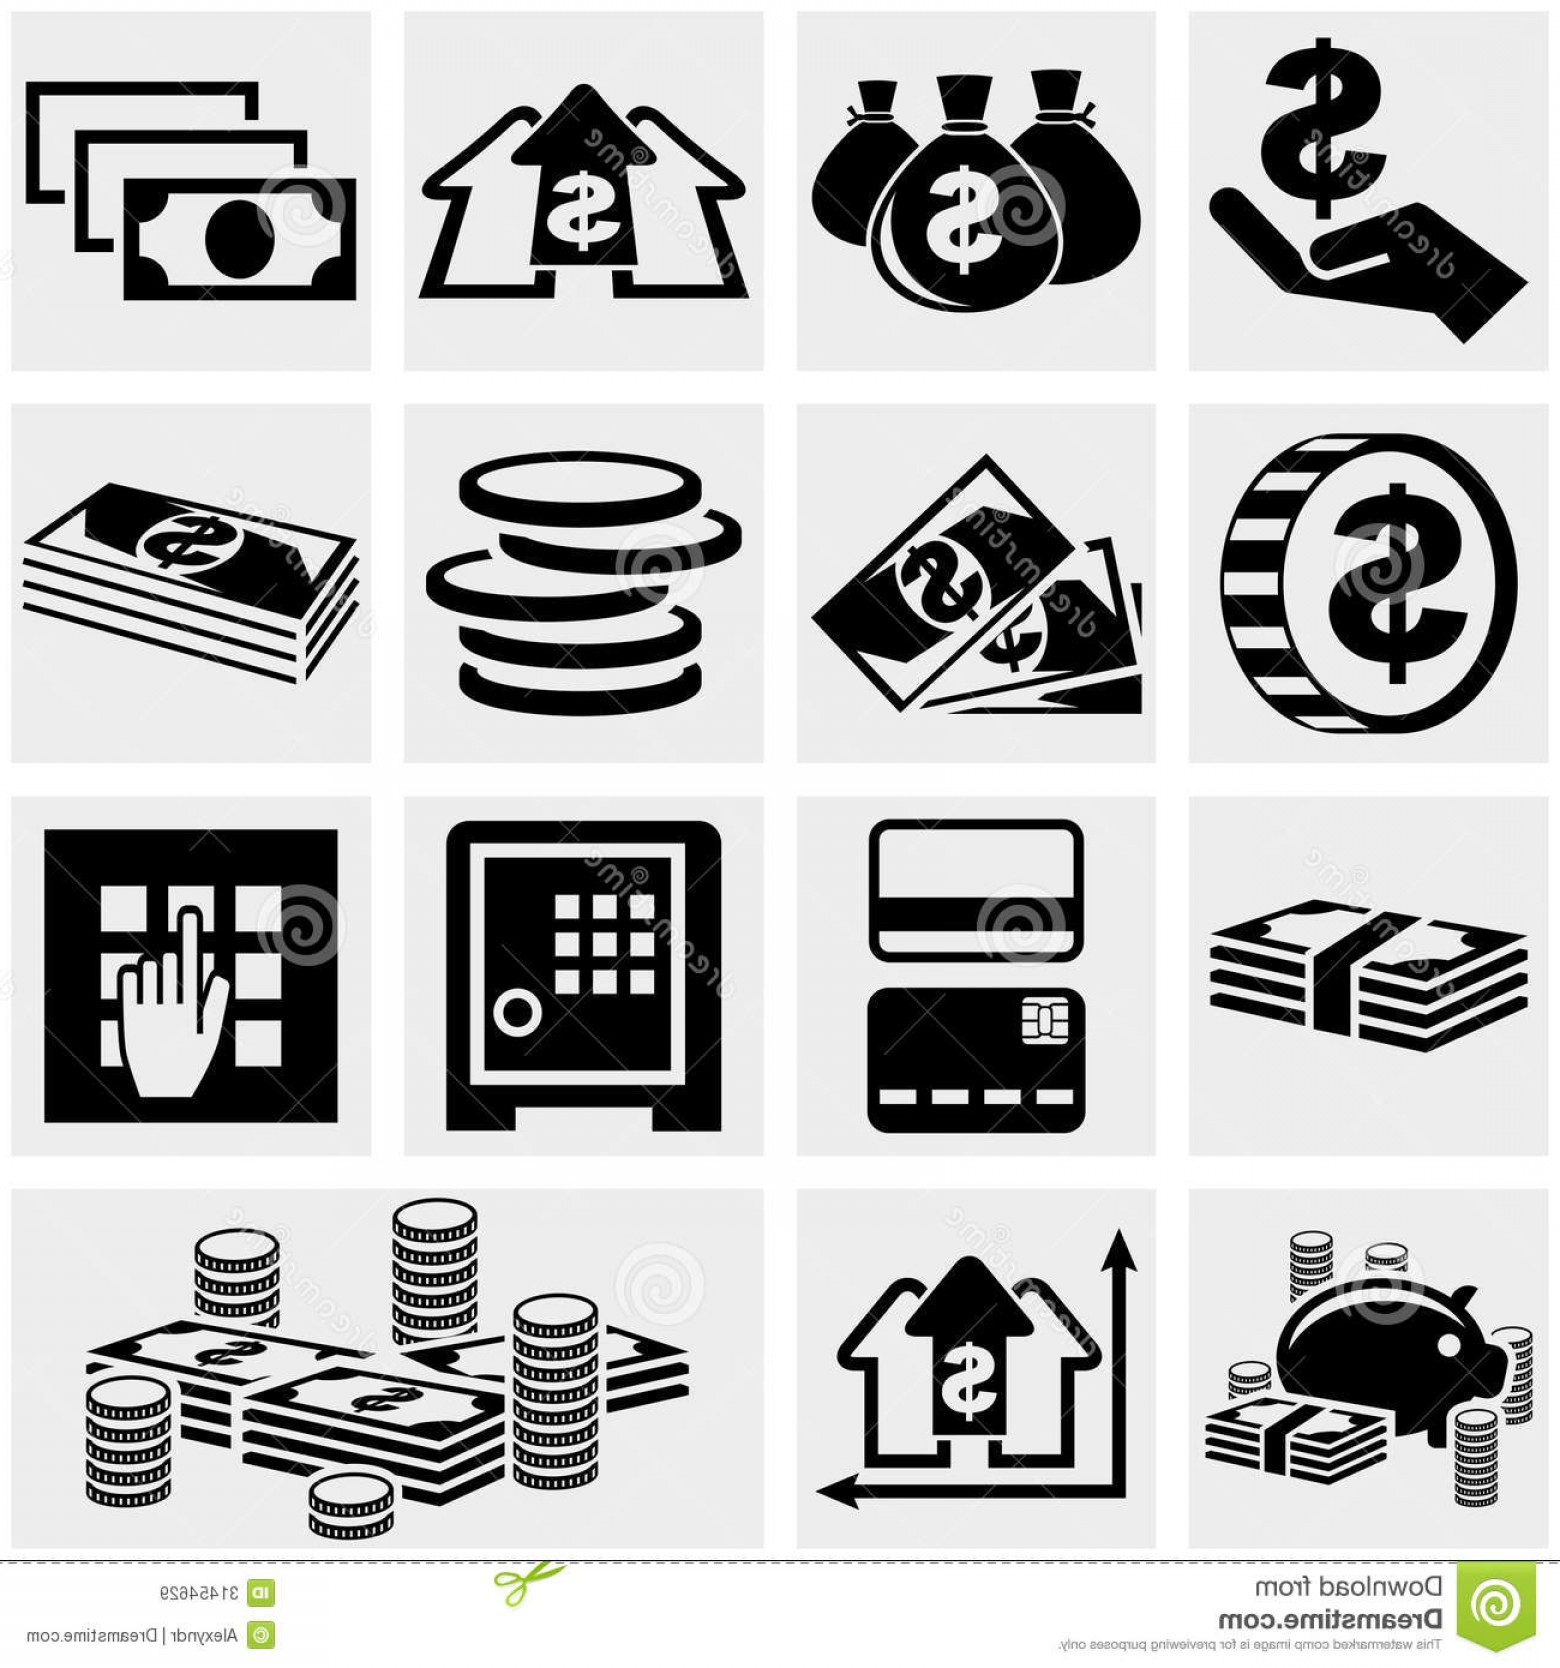 Isolated free stock clipart photos graphic transparent stock Royalty Free Stock Images Banking Money Coin Vector Icons Set ... graphic transparent stock